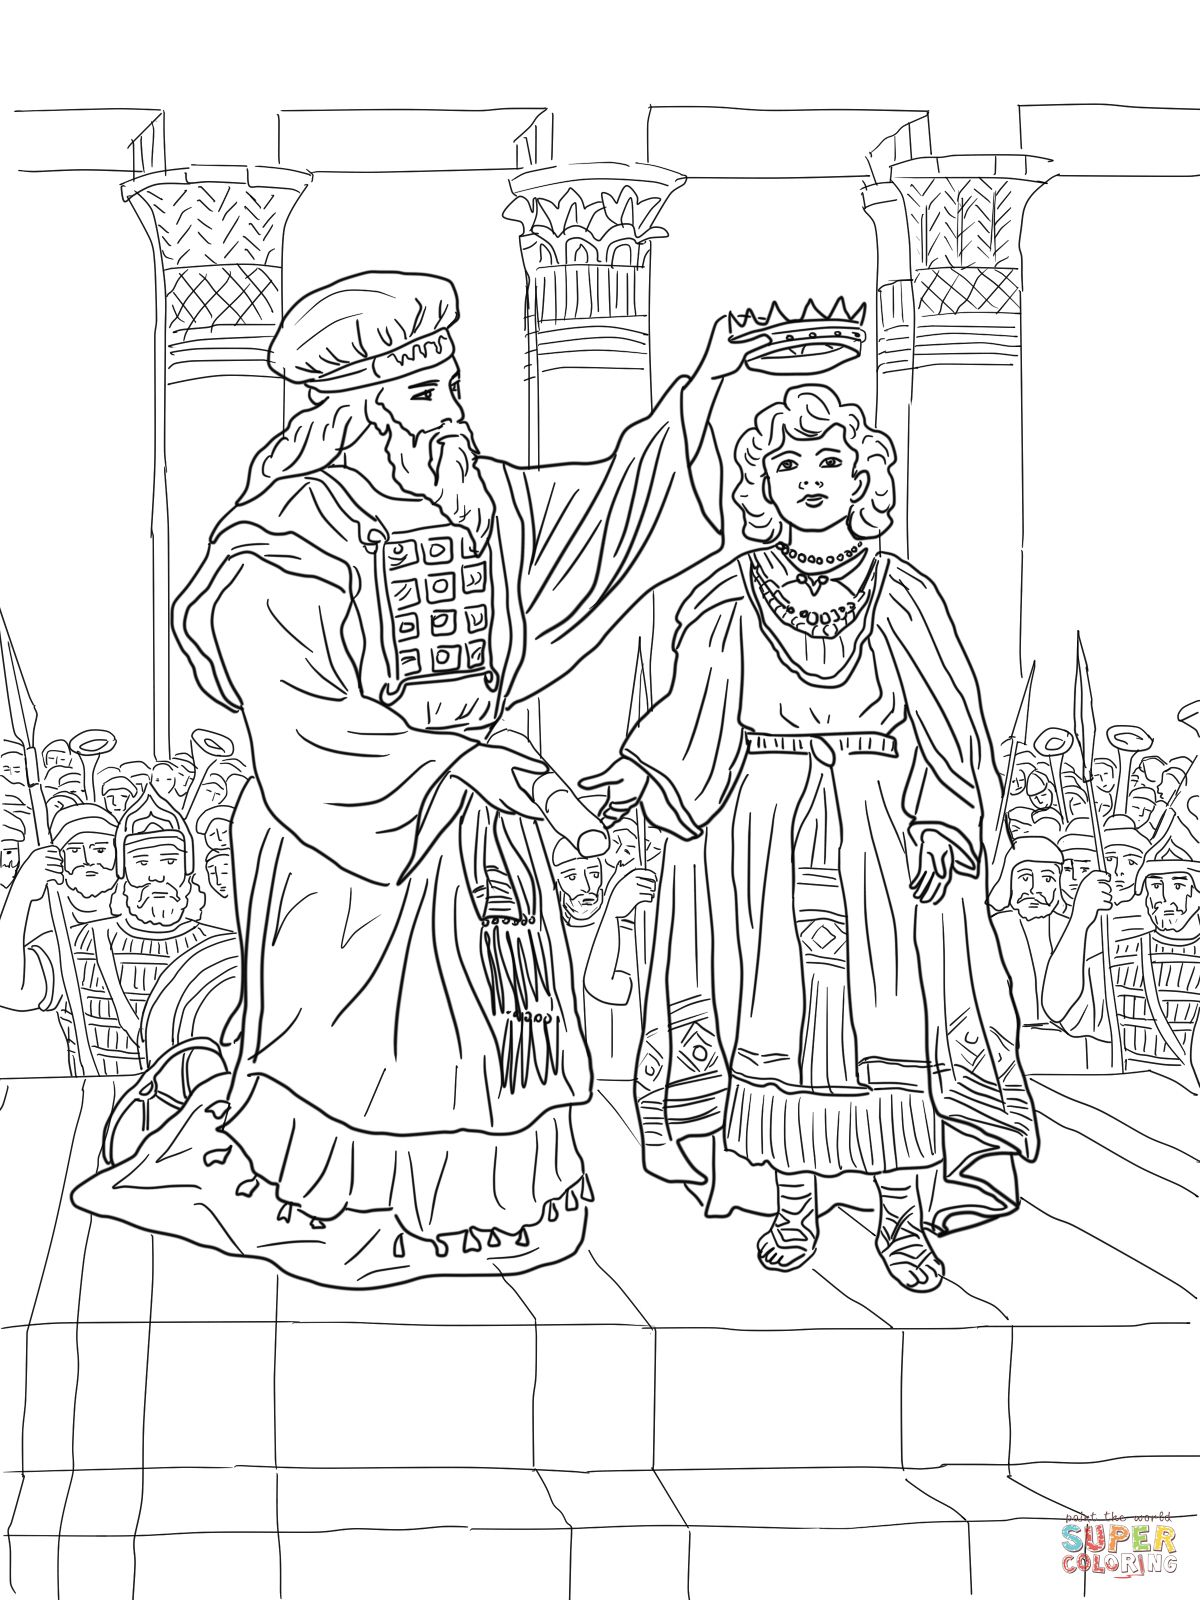 Uncategorized King Josiah Coloring Page king joash crowned coloring page supercoloring com divided com